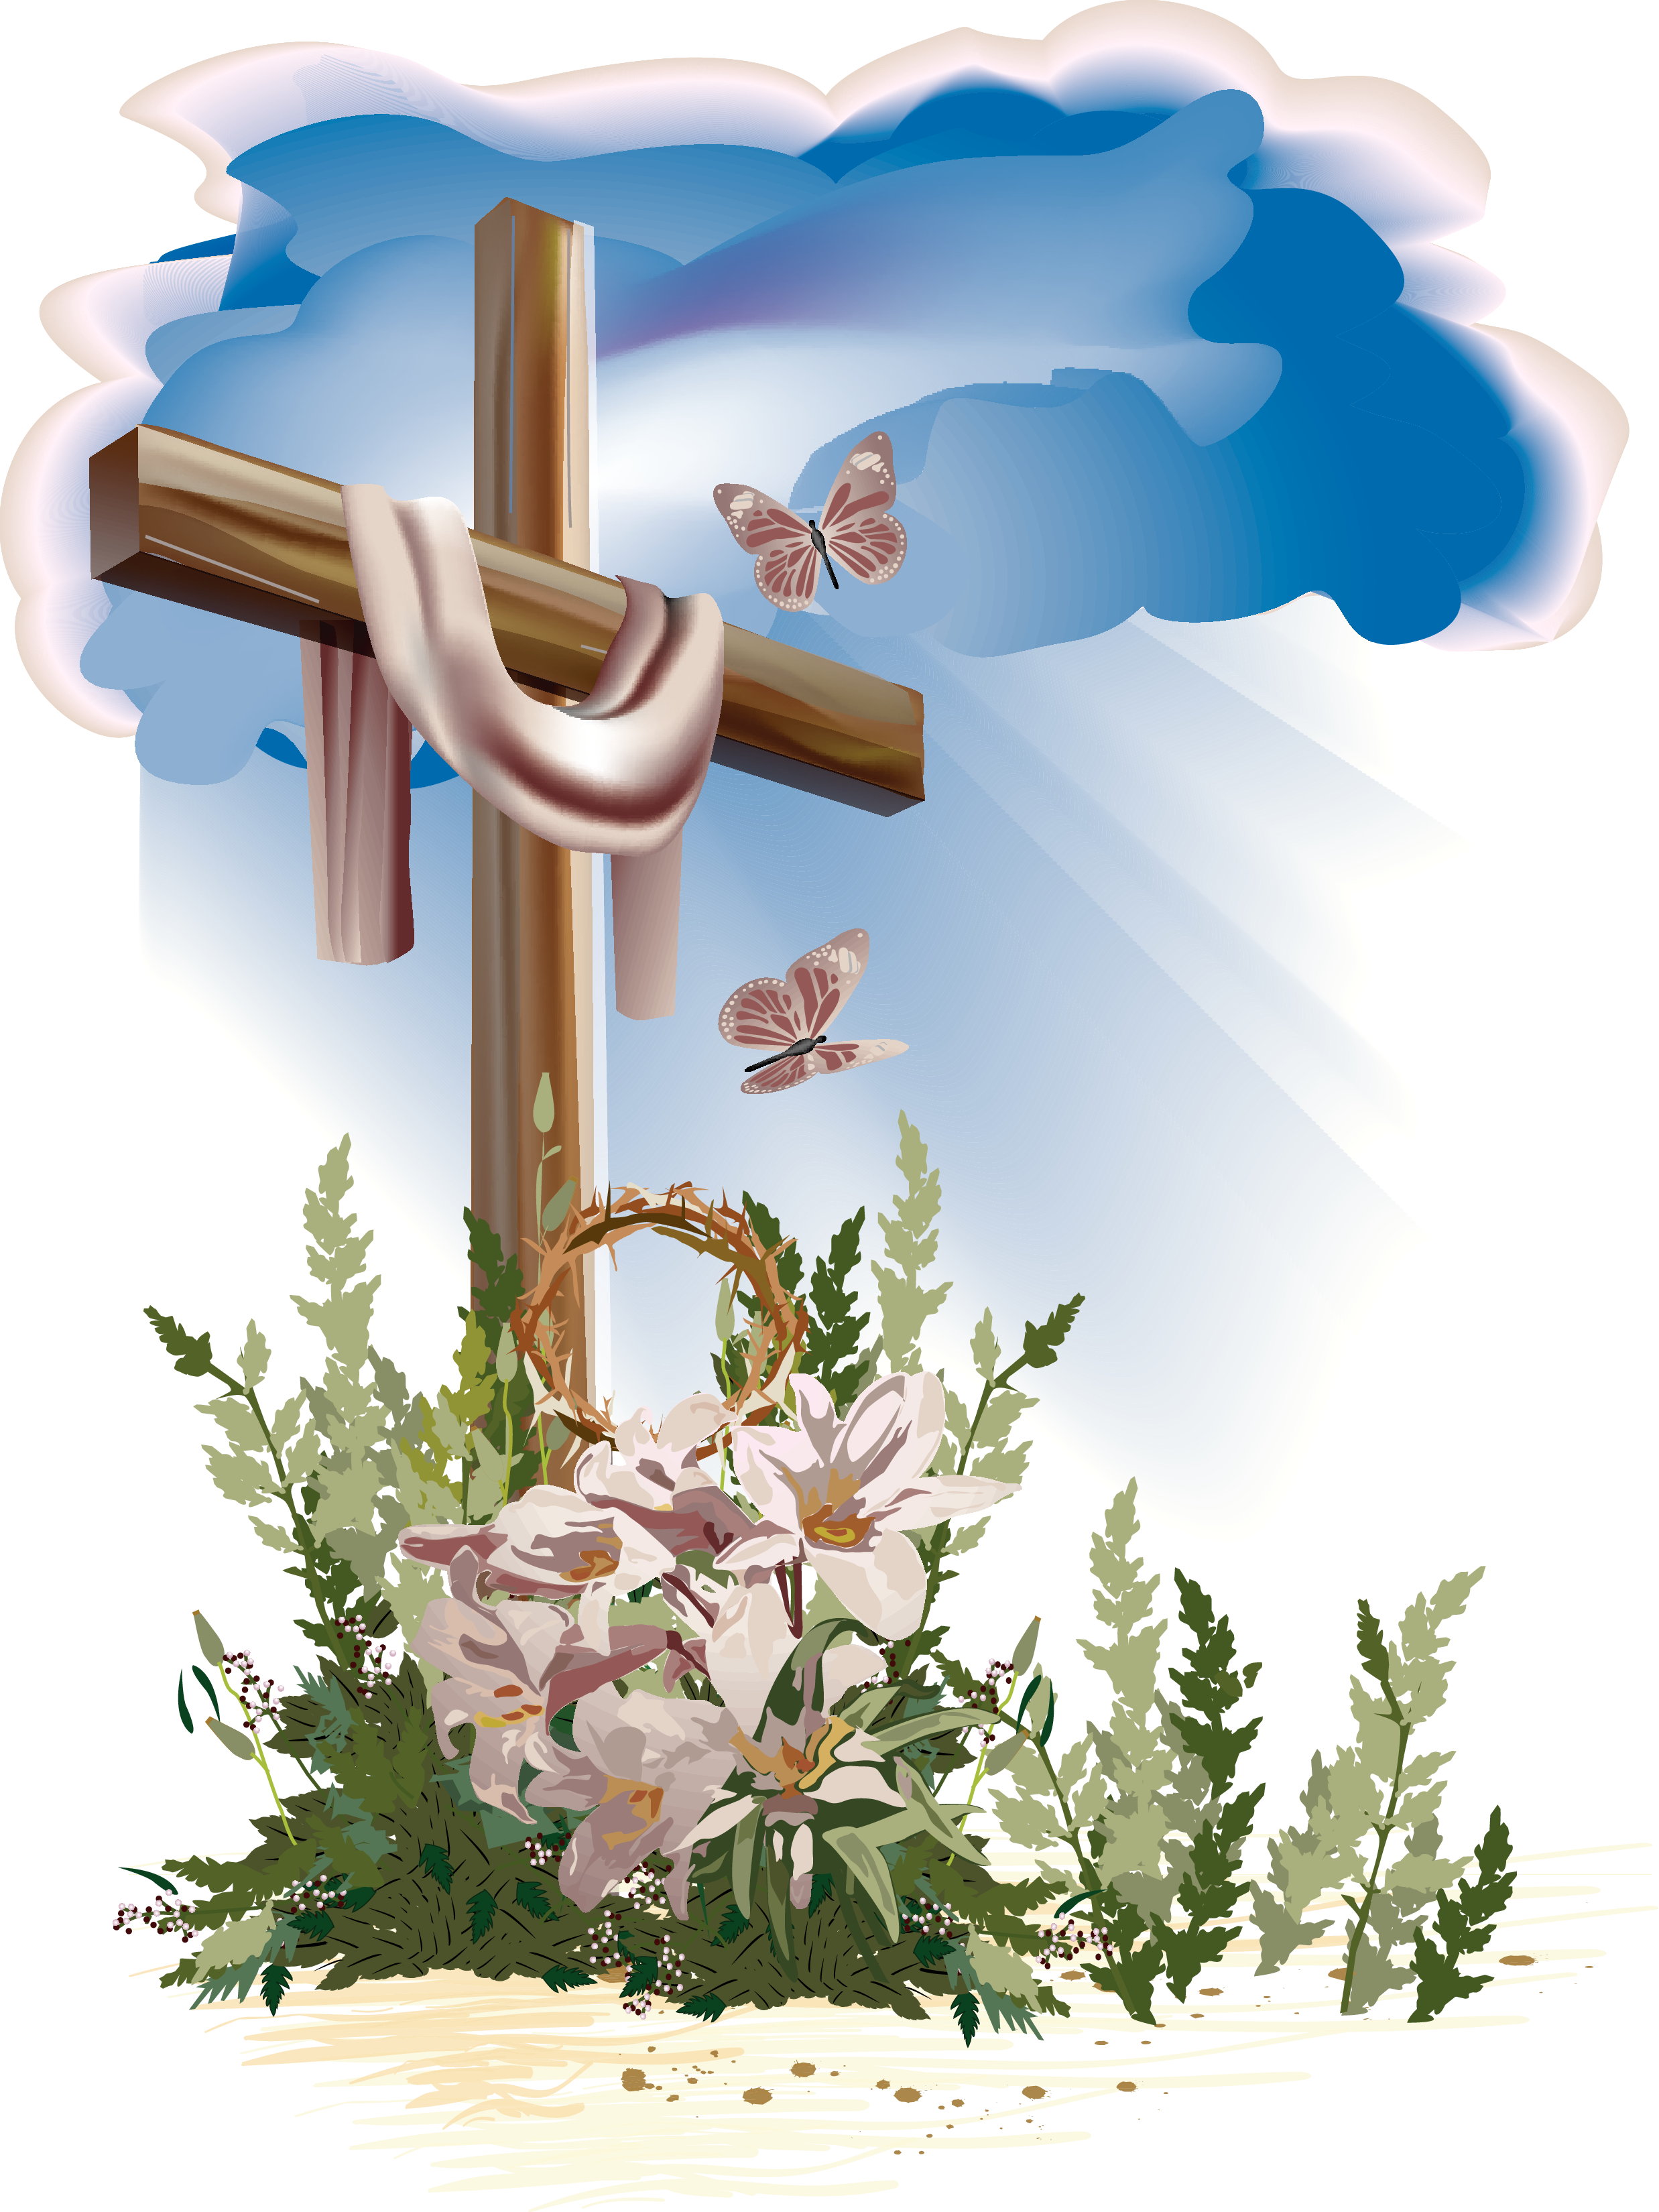 Easter cross clipart free freeuse library Free Christian PNG HD Transparent Christian HD.PNG Images. | PlusPNG freeuse library